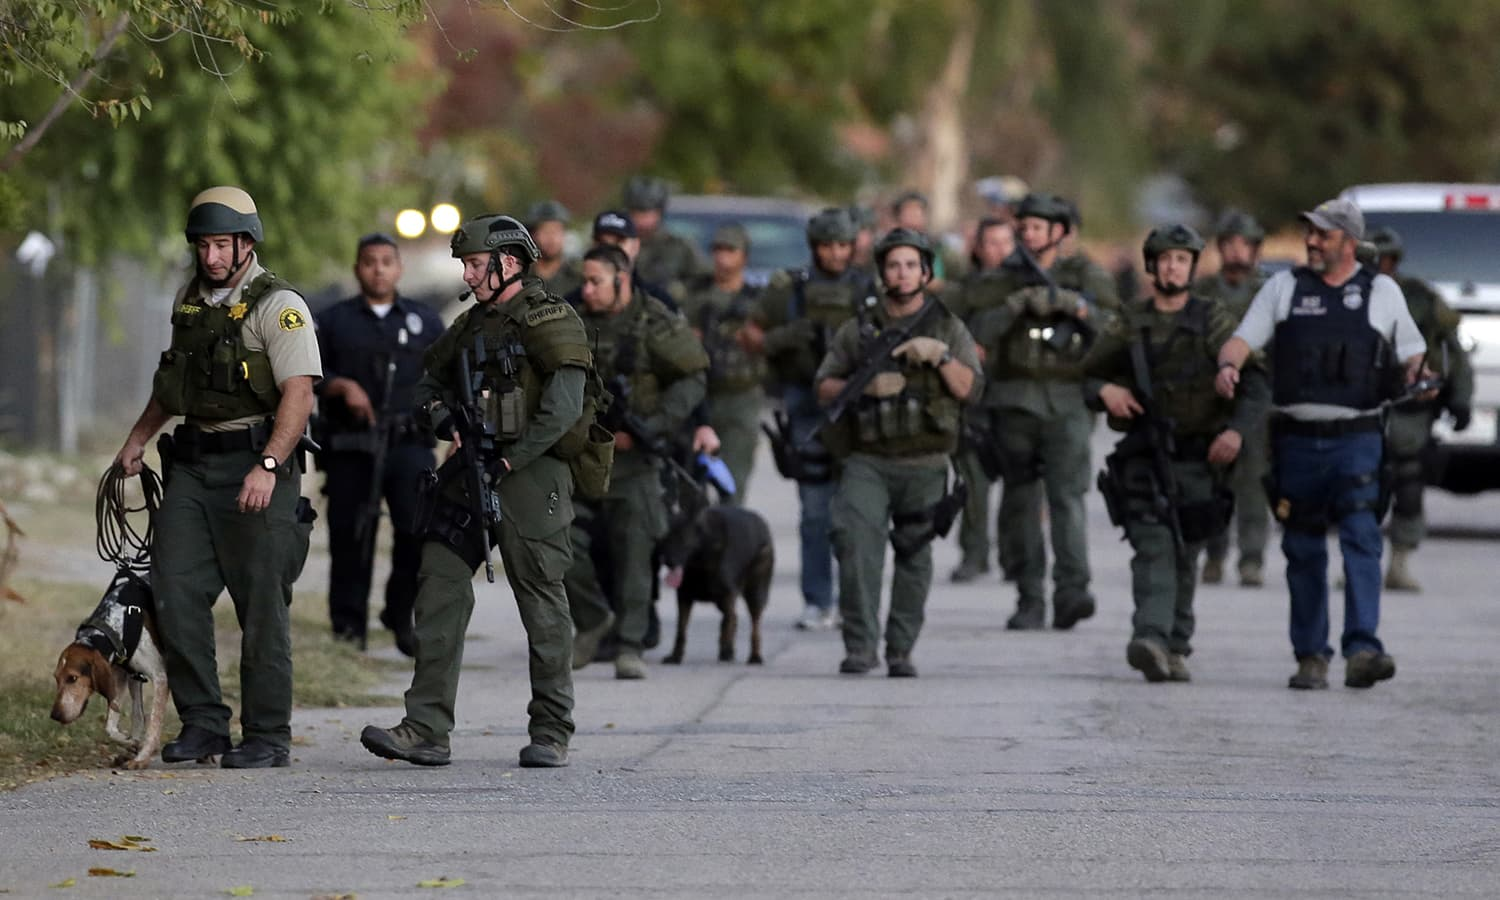 Authorities search for a suspect following the shooting. ─ AP